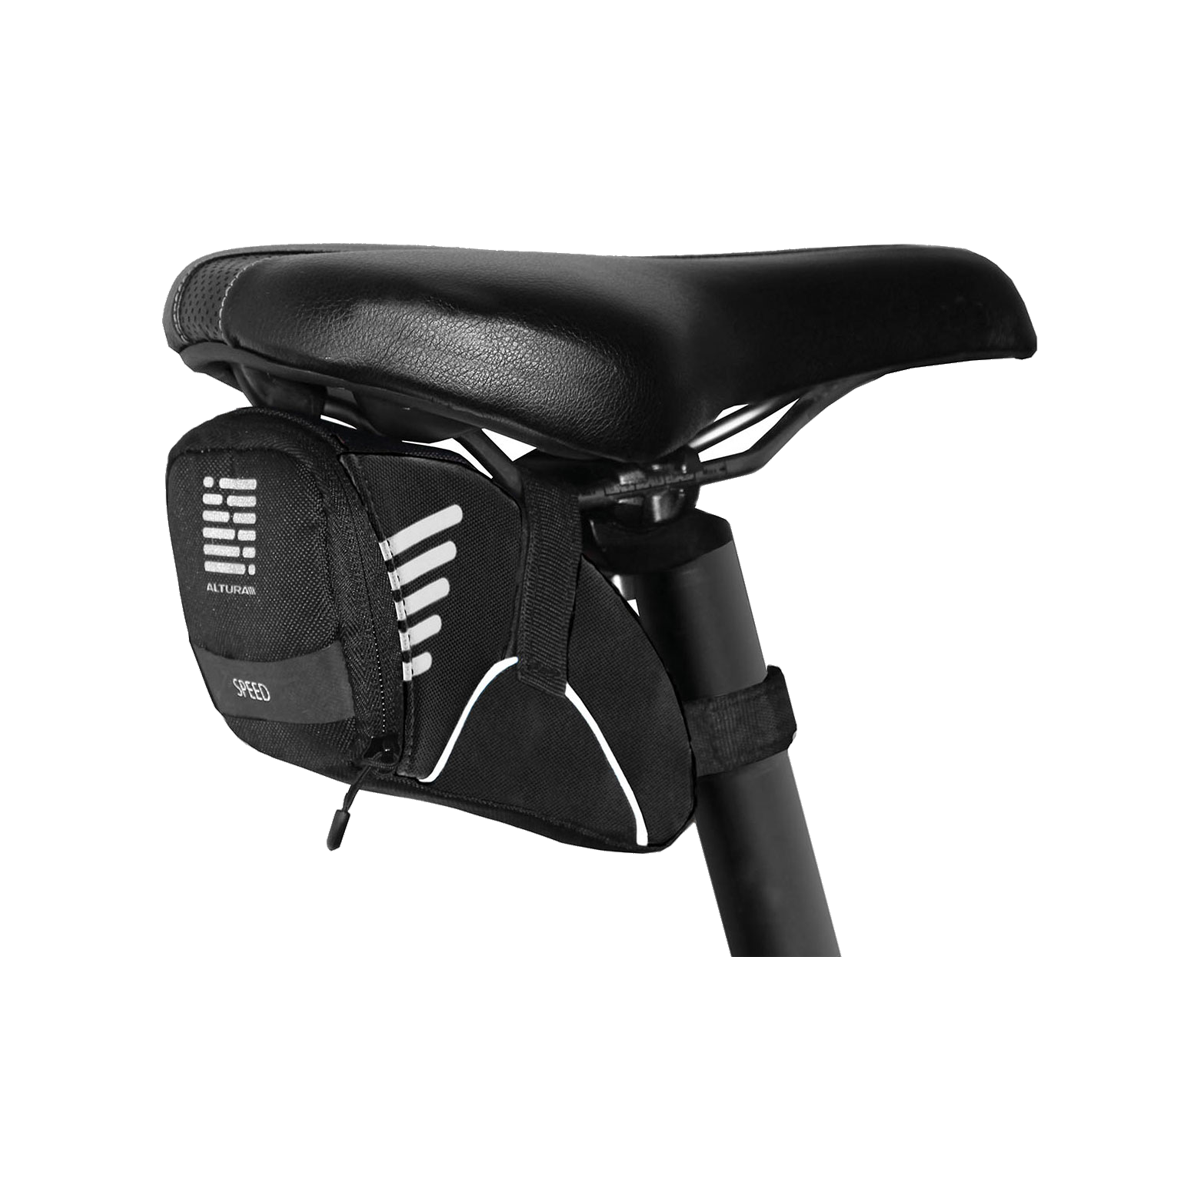 Pannier clip altura arran 16. New products on your